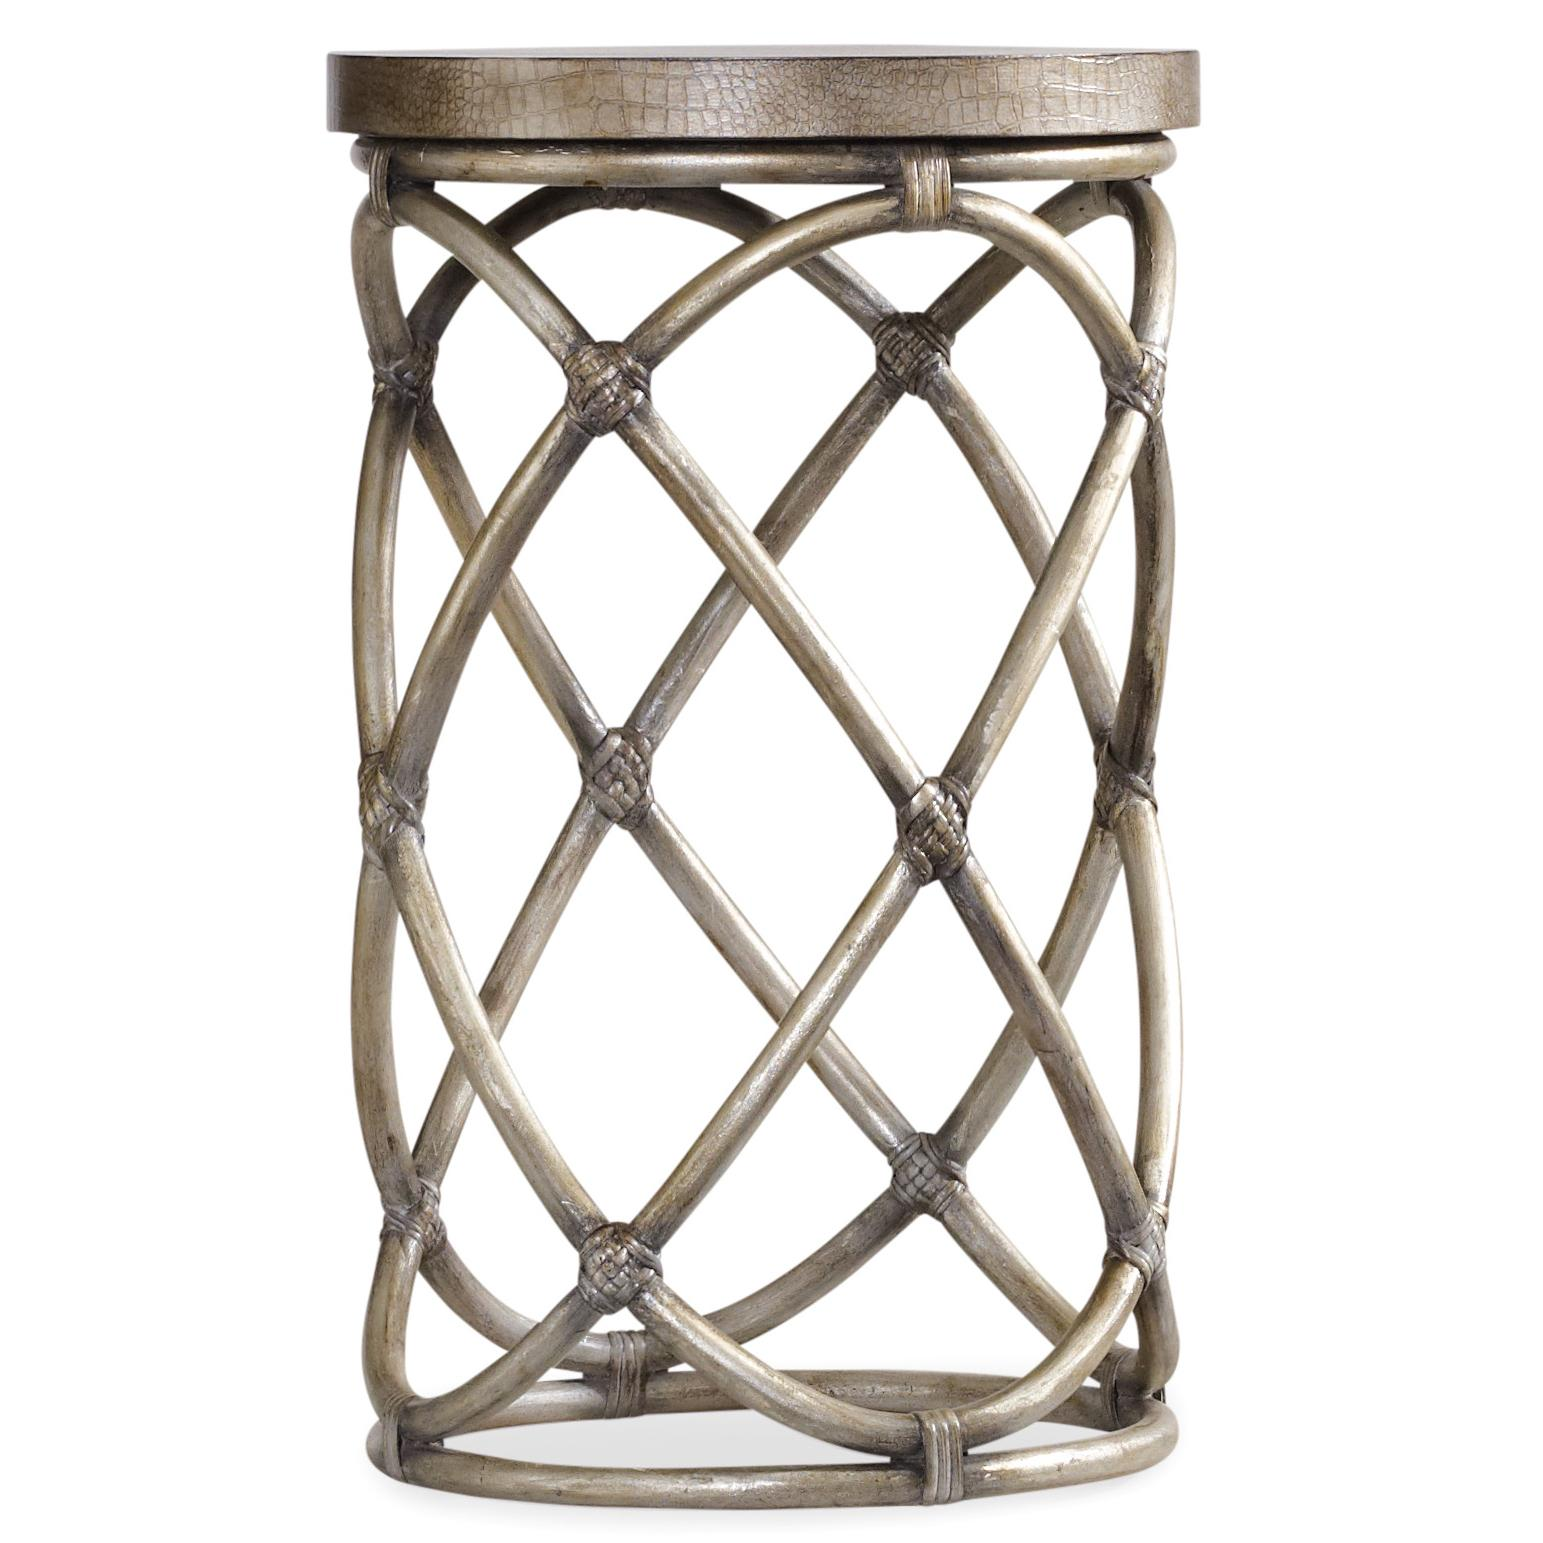 Hooker Furniture Mélange Rattan Accent Table - Item Number: 638-50100